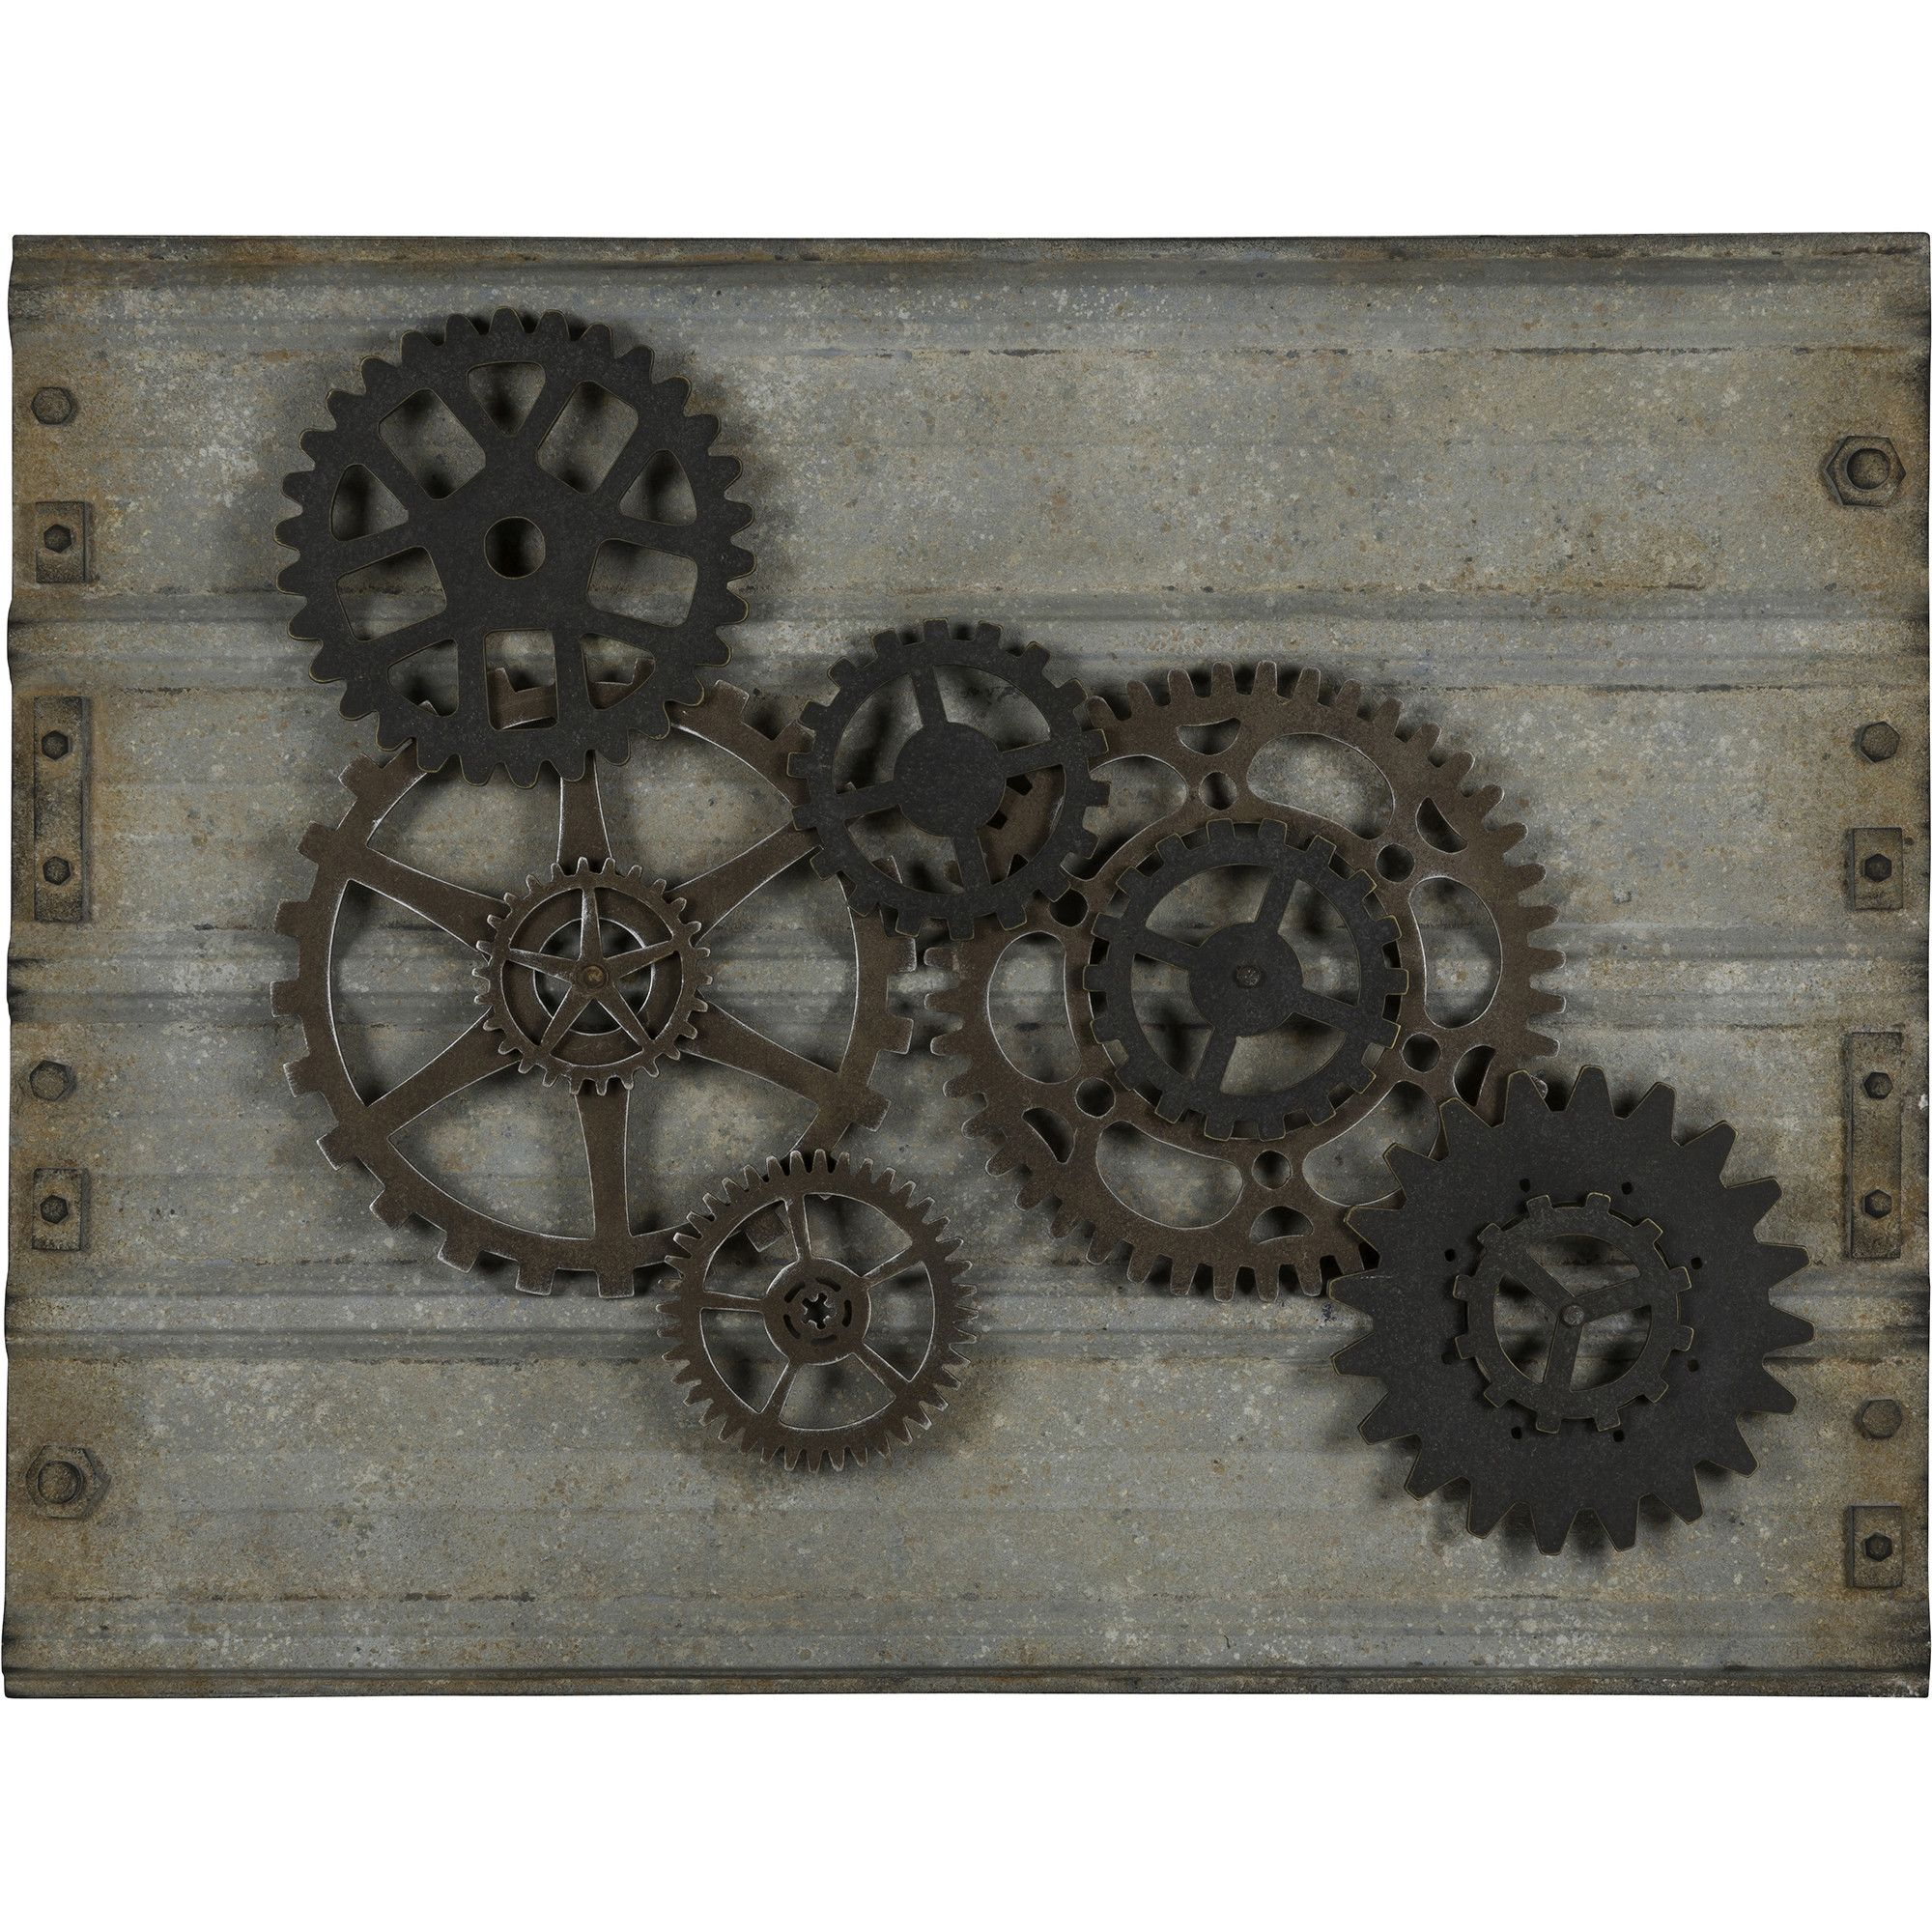 Metal Gears Wall Decor : The handsome gear wall hanging will bring style to any